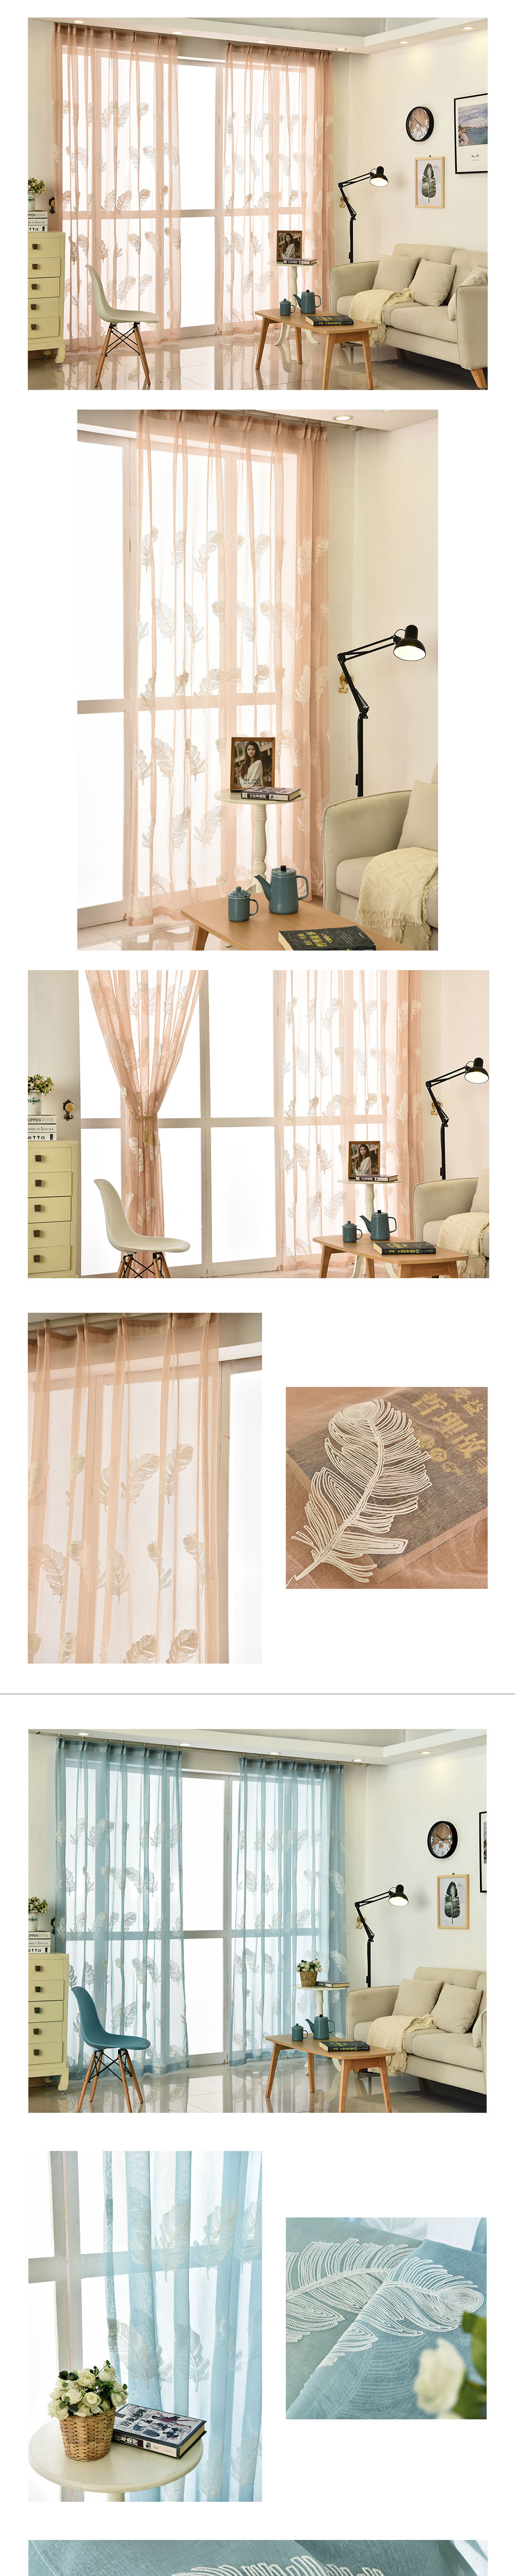 XH047 LOZUJOJU Embroidery feather sheer curtains transparent all match tulle drop for living room bedroom elegant chiffon fabric cloth (1)